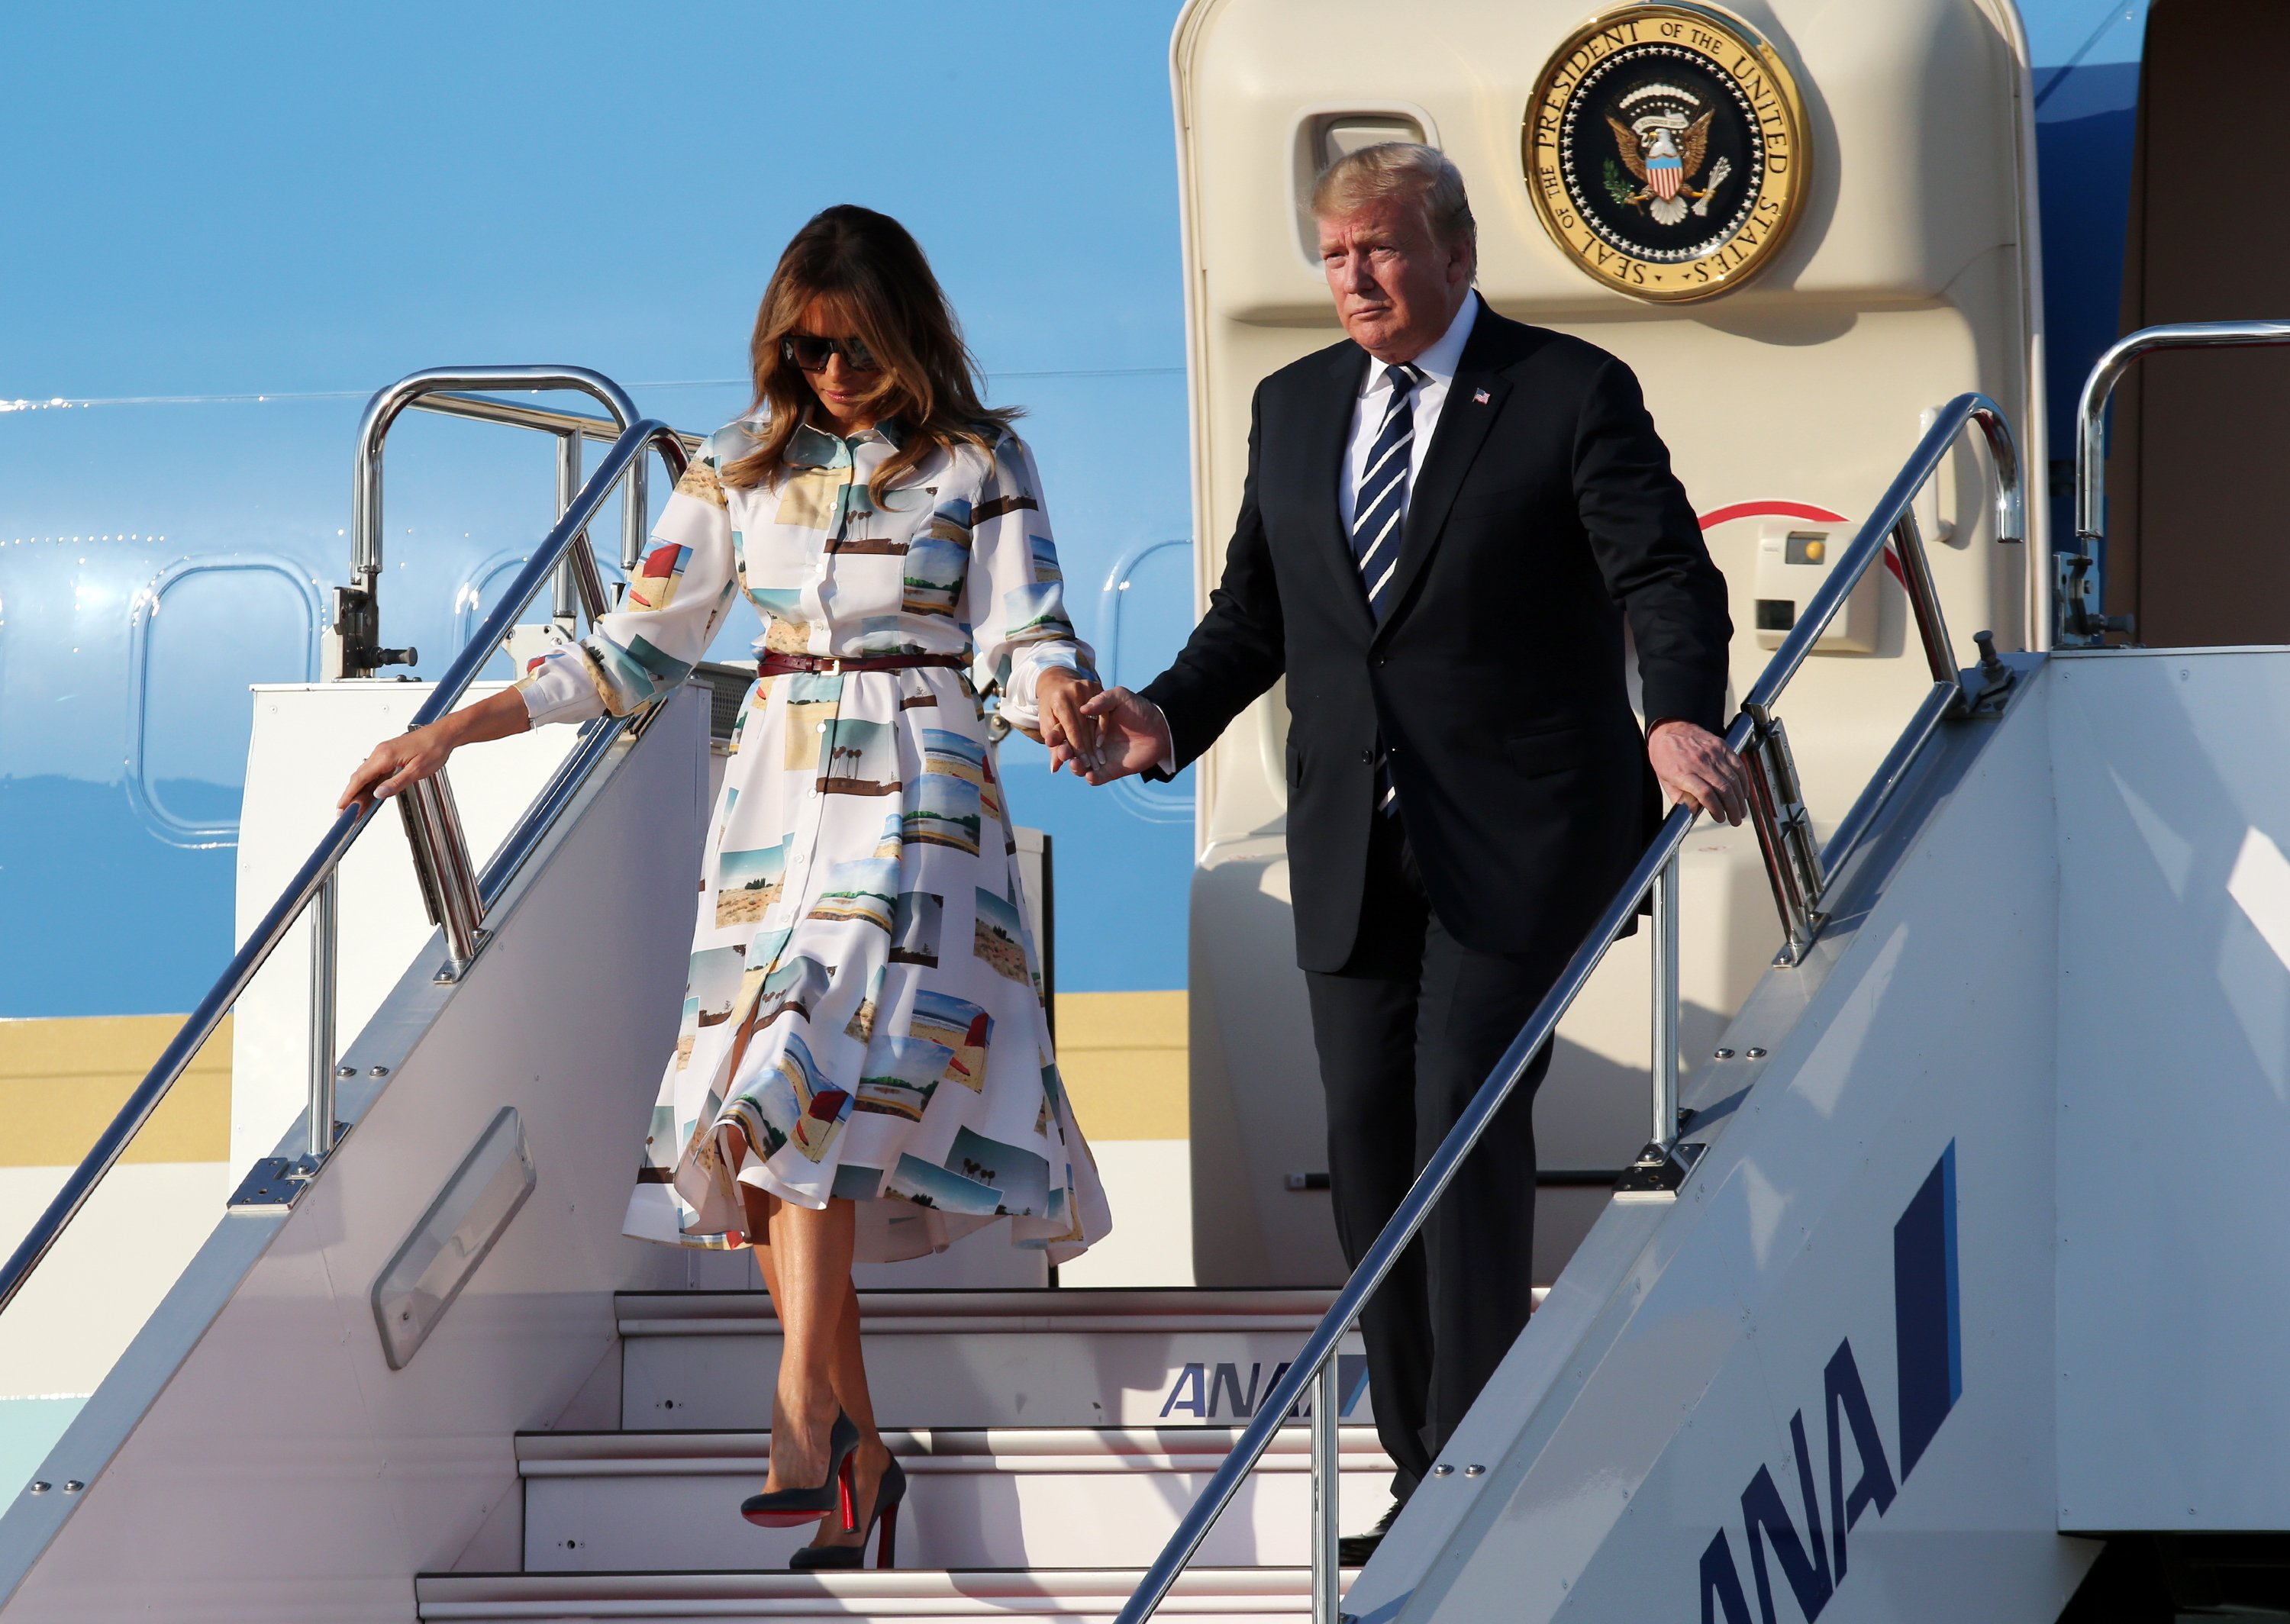 Donald Trump and Melania Trump arriving at the Haneda International Airport in Tokyo, Japan | Photo: Getty Images